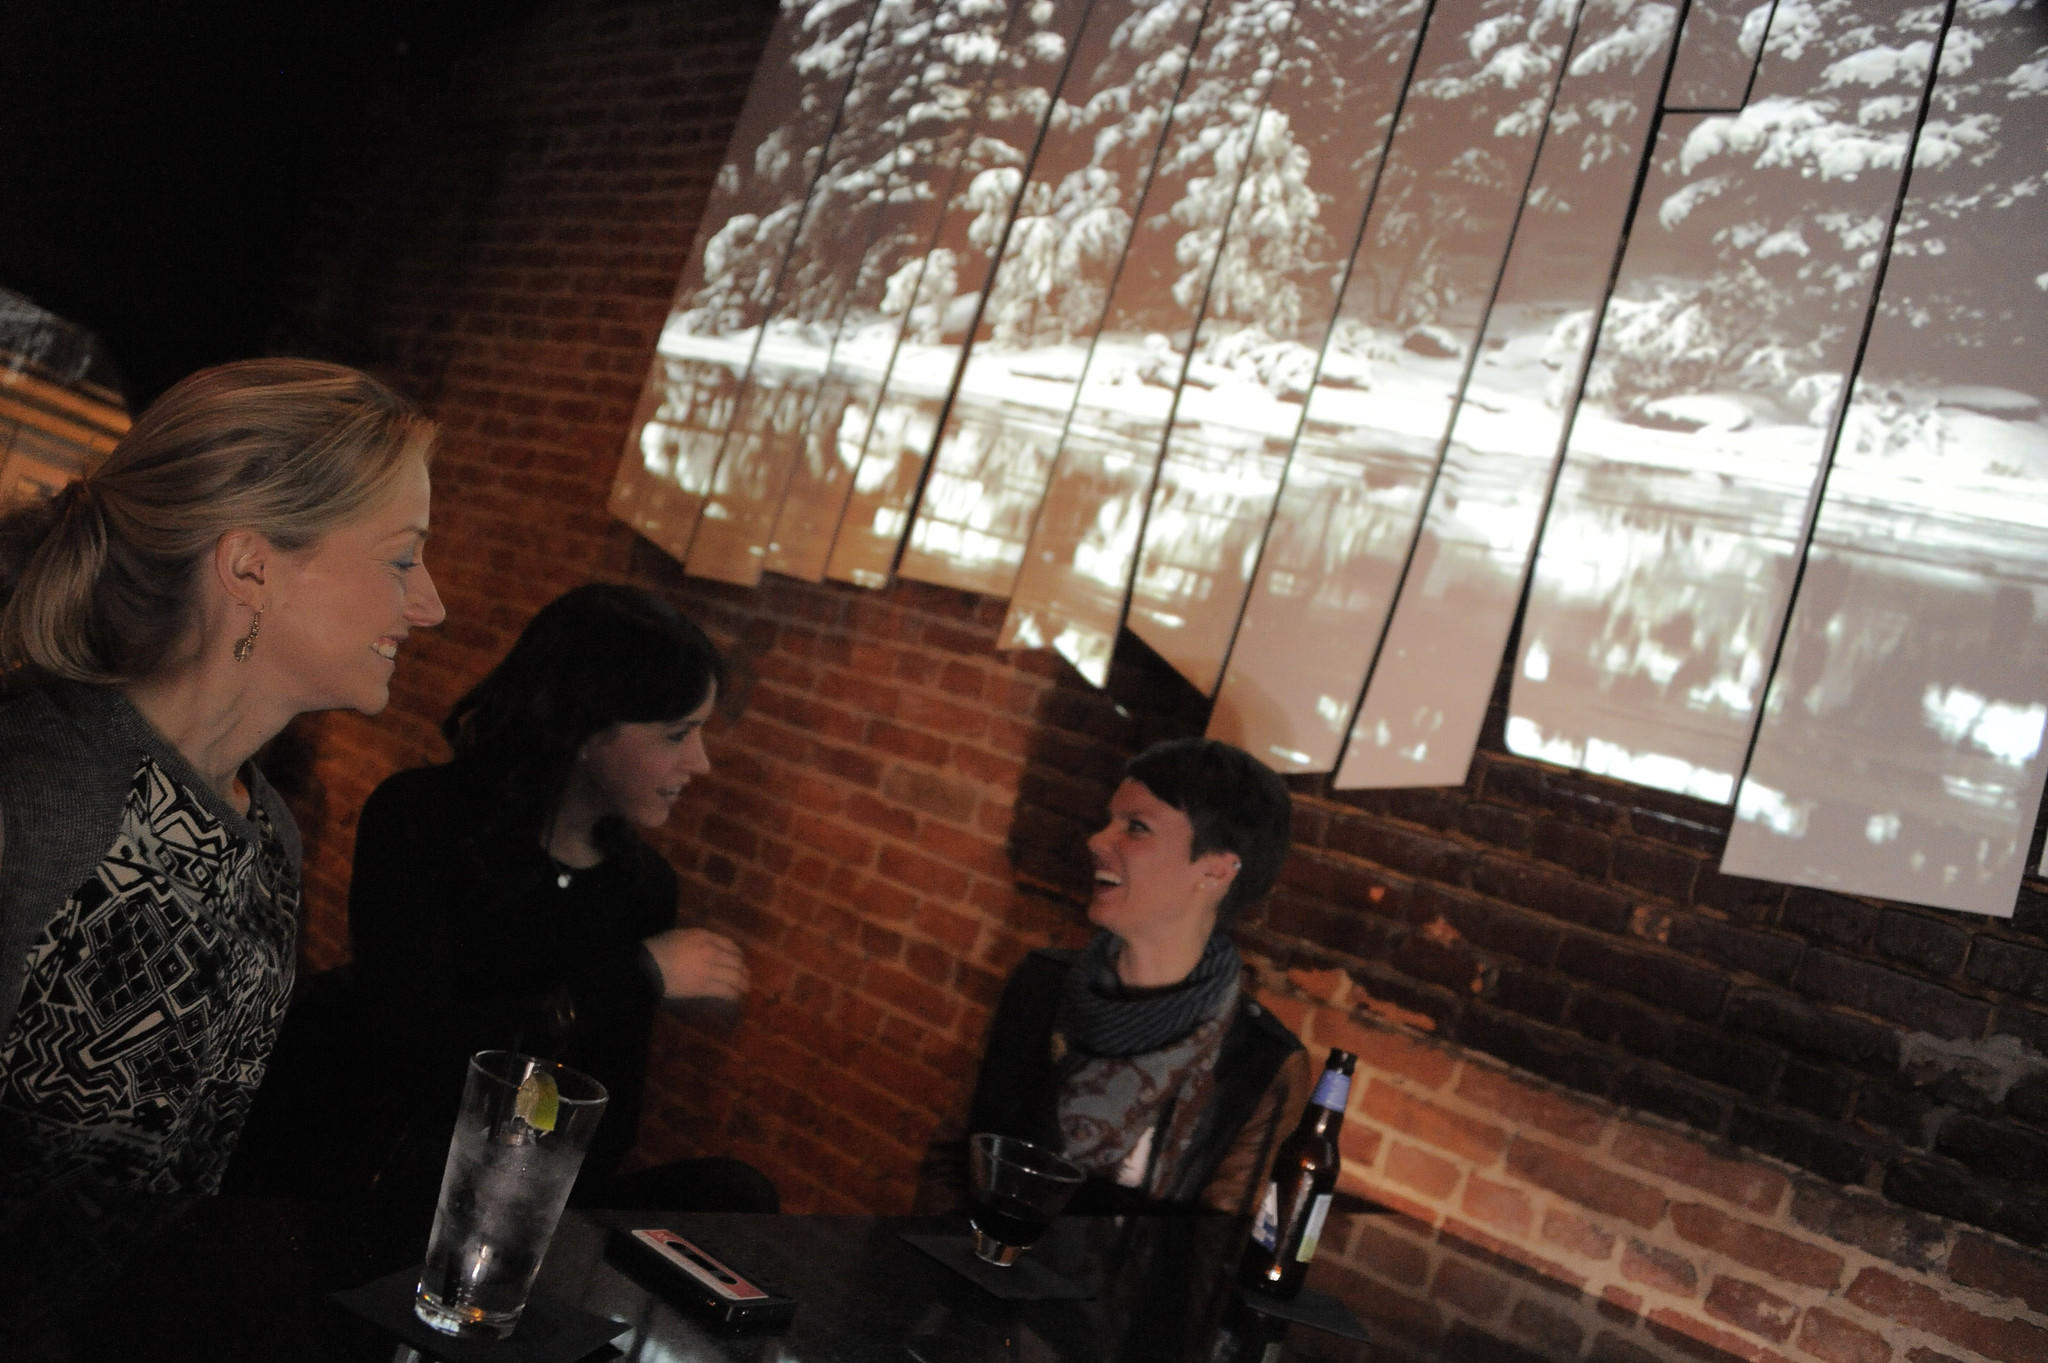 From left: Jamie Fienko, Brienna D'Angelone and Erica Stoney chat at Vale Tudo, which is now known as The Rockwell.